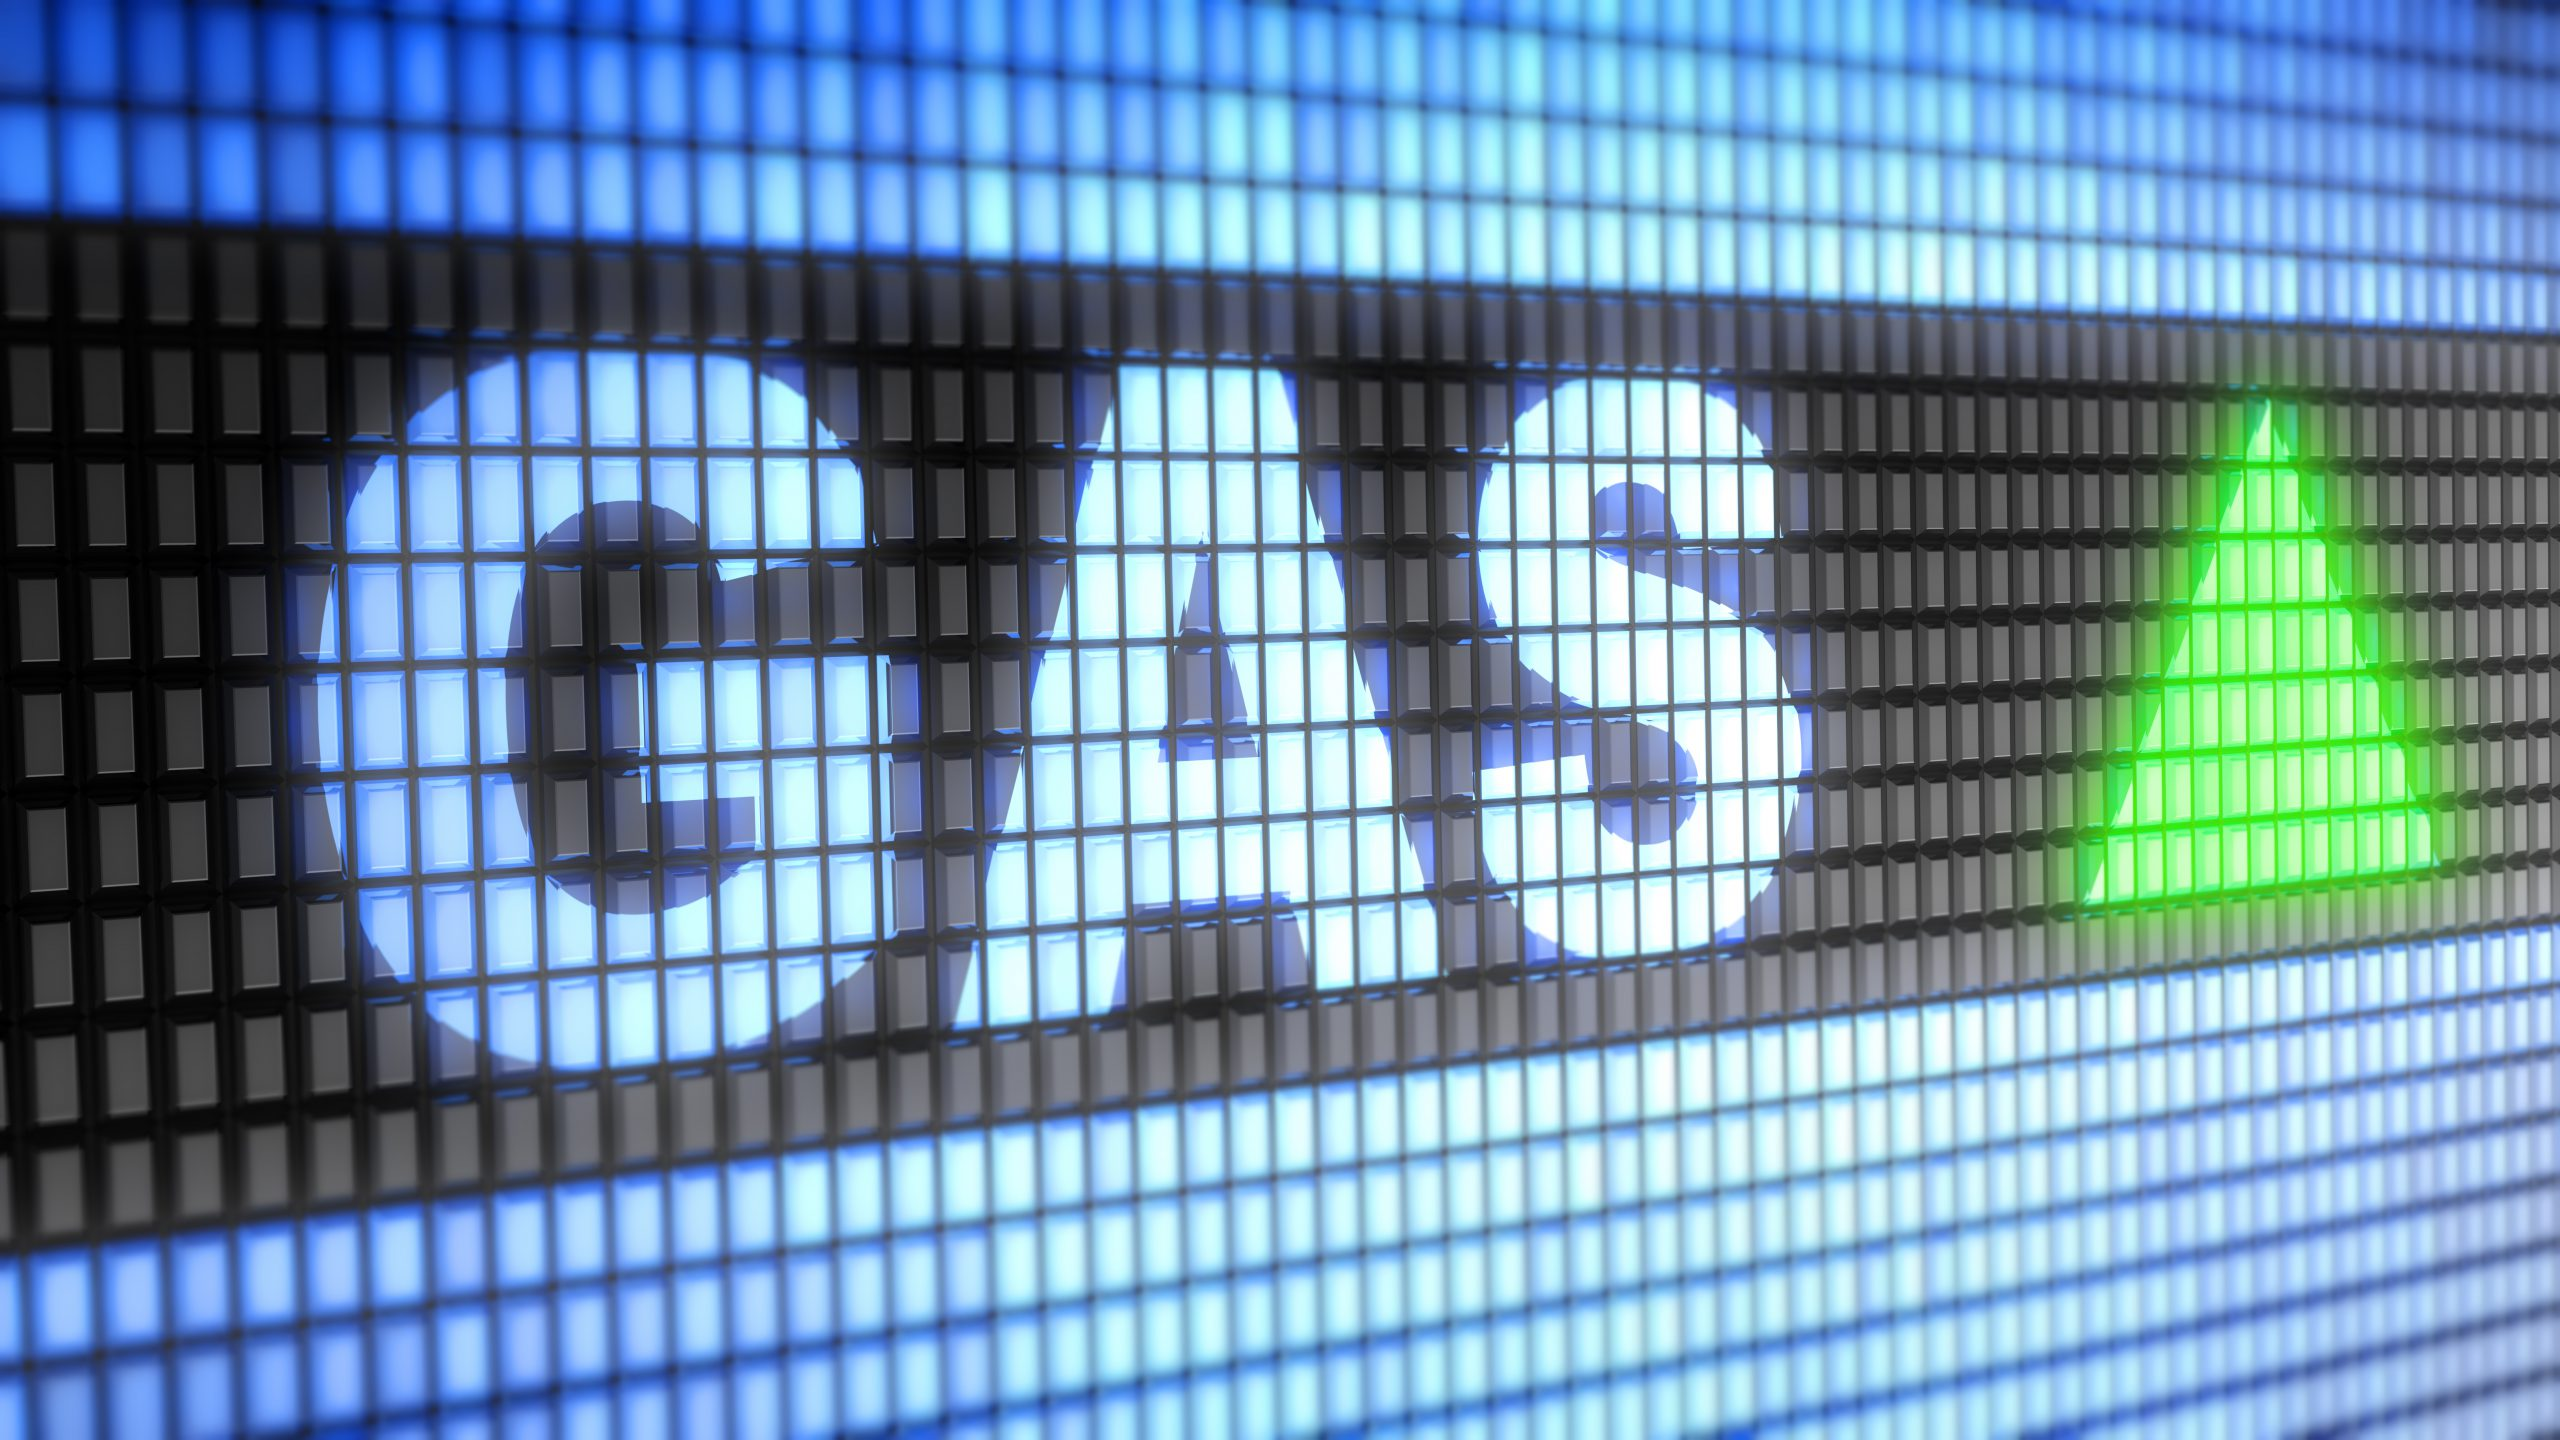 3 Natural Gas Stocks to Buy in February: Cabot Oil & Gas, EQT, and Range Resources